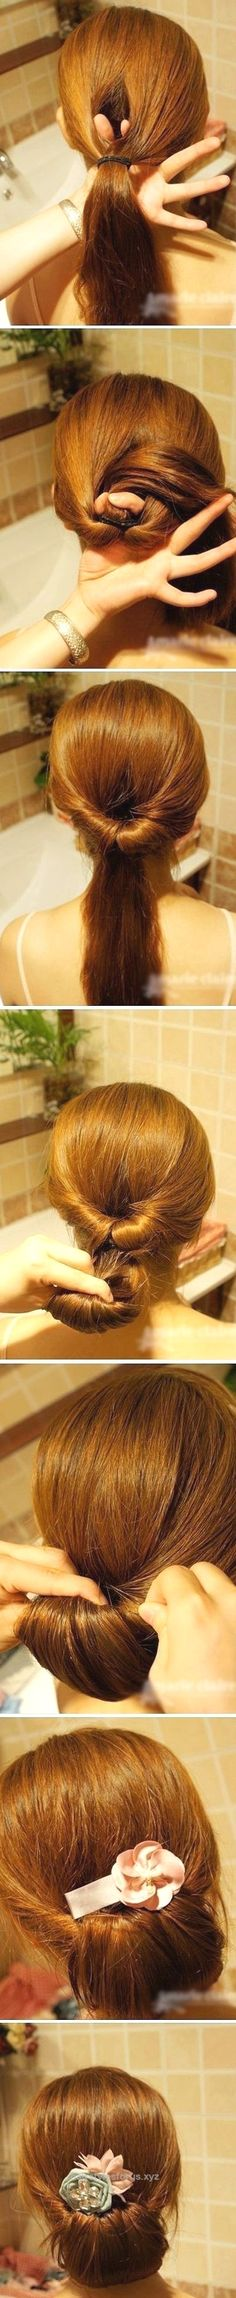 Fantastic How To Get Summer's 27 Best Hairstyles The post How To Get Summer's 27 Best Hairstyles… appeared first on Hairstyles .